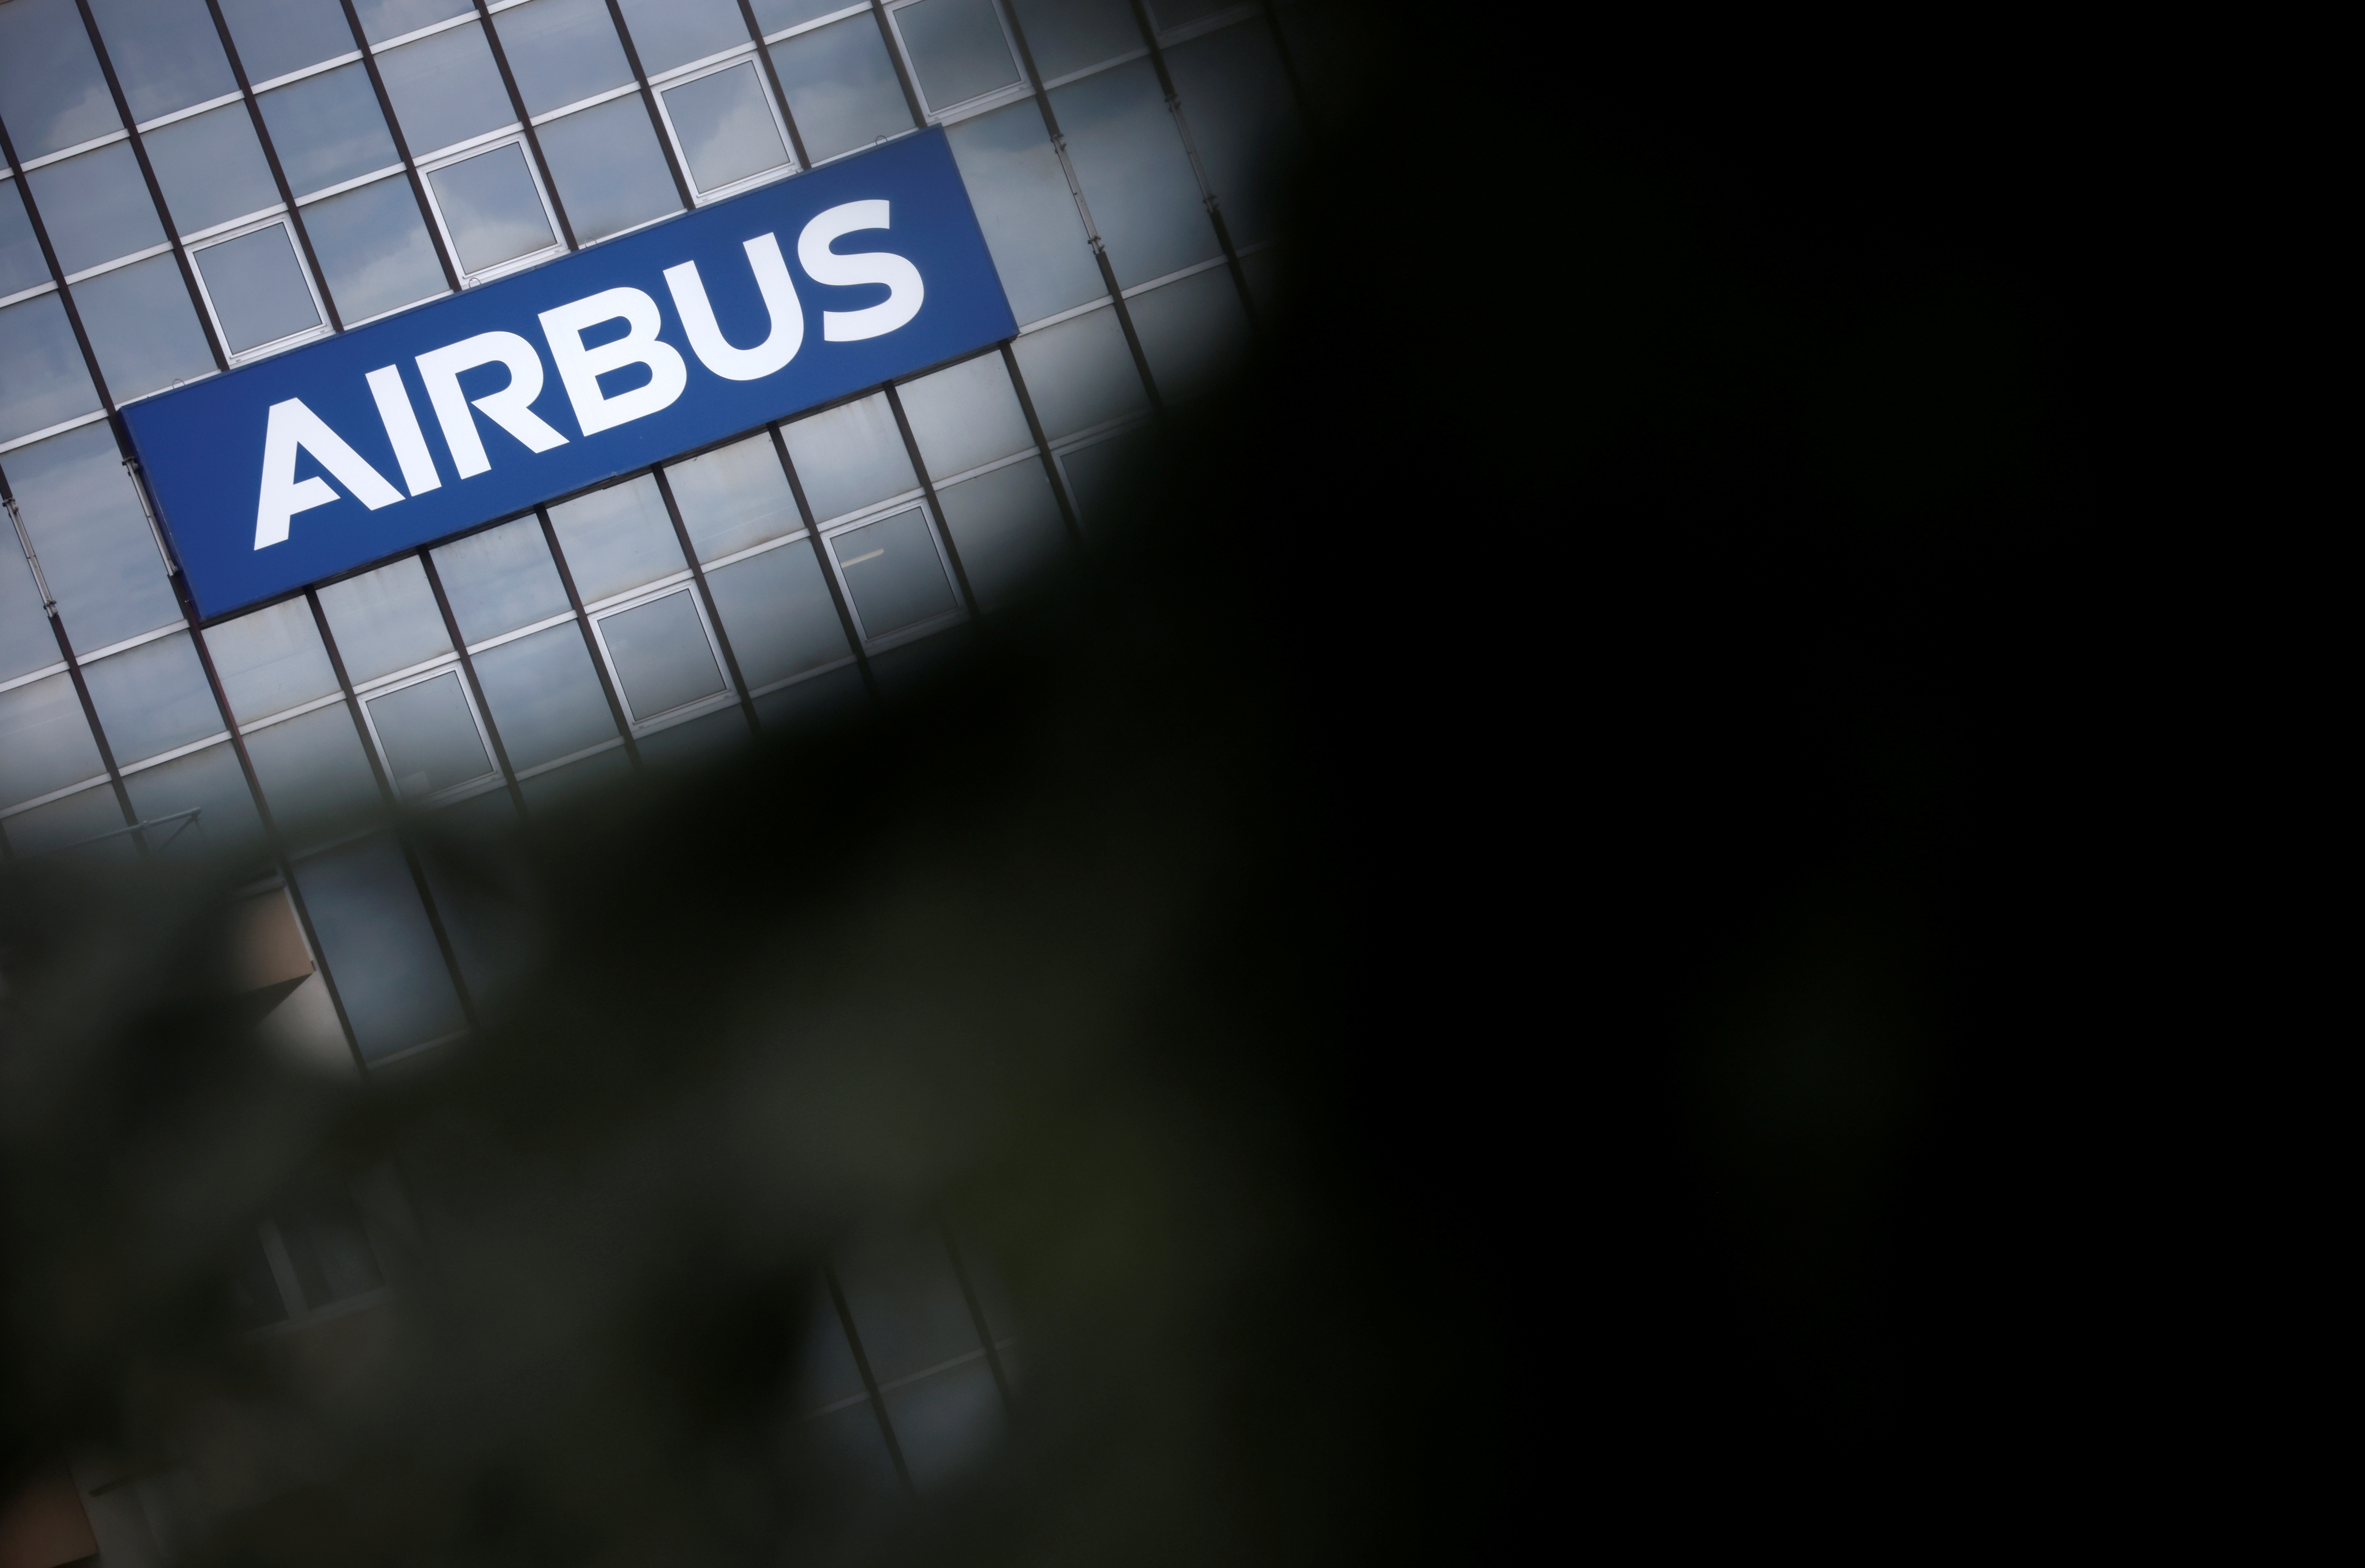 The logo of Airbus is seen on a building in Toulouse, France, March 11, 2021. REUTERS/Stephane Mahe/File Photo